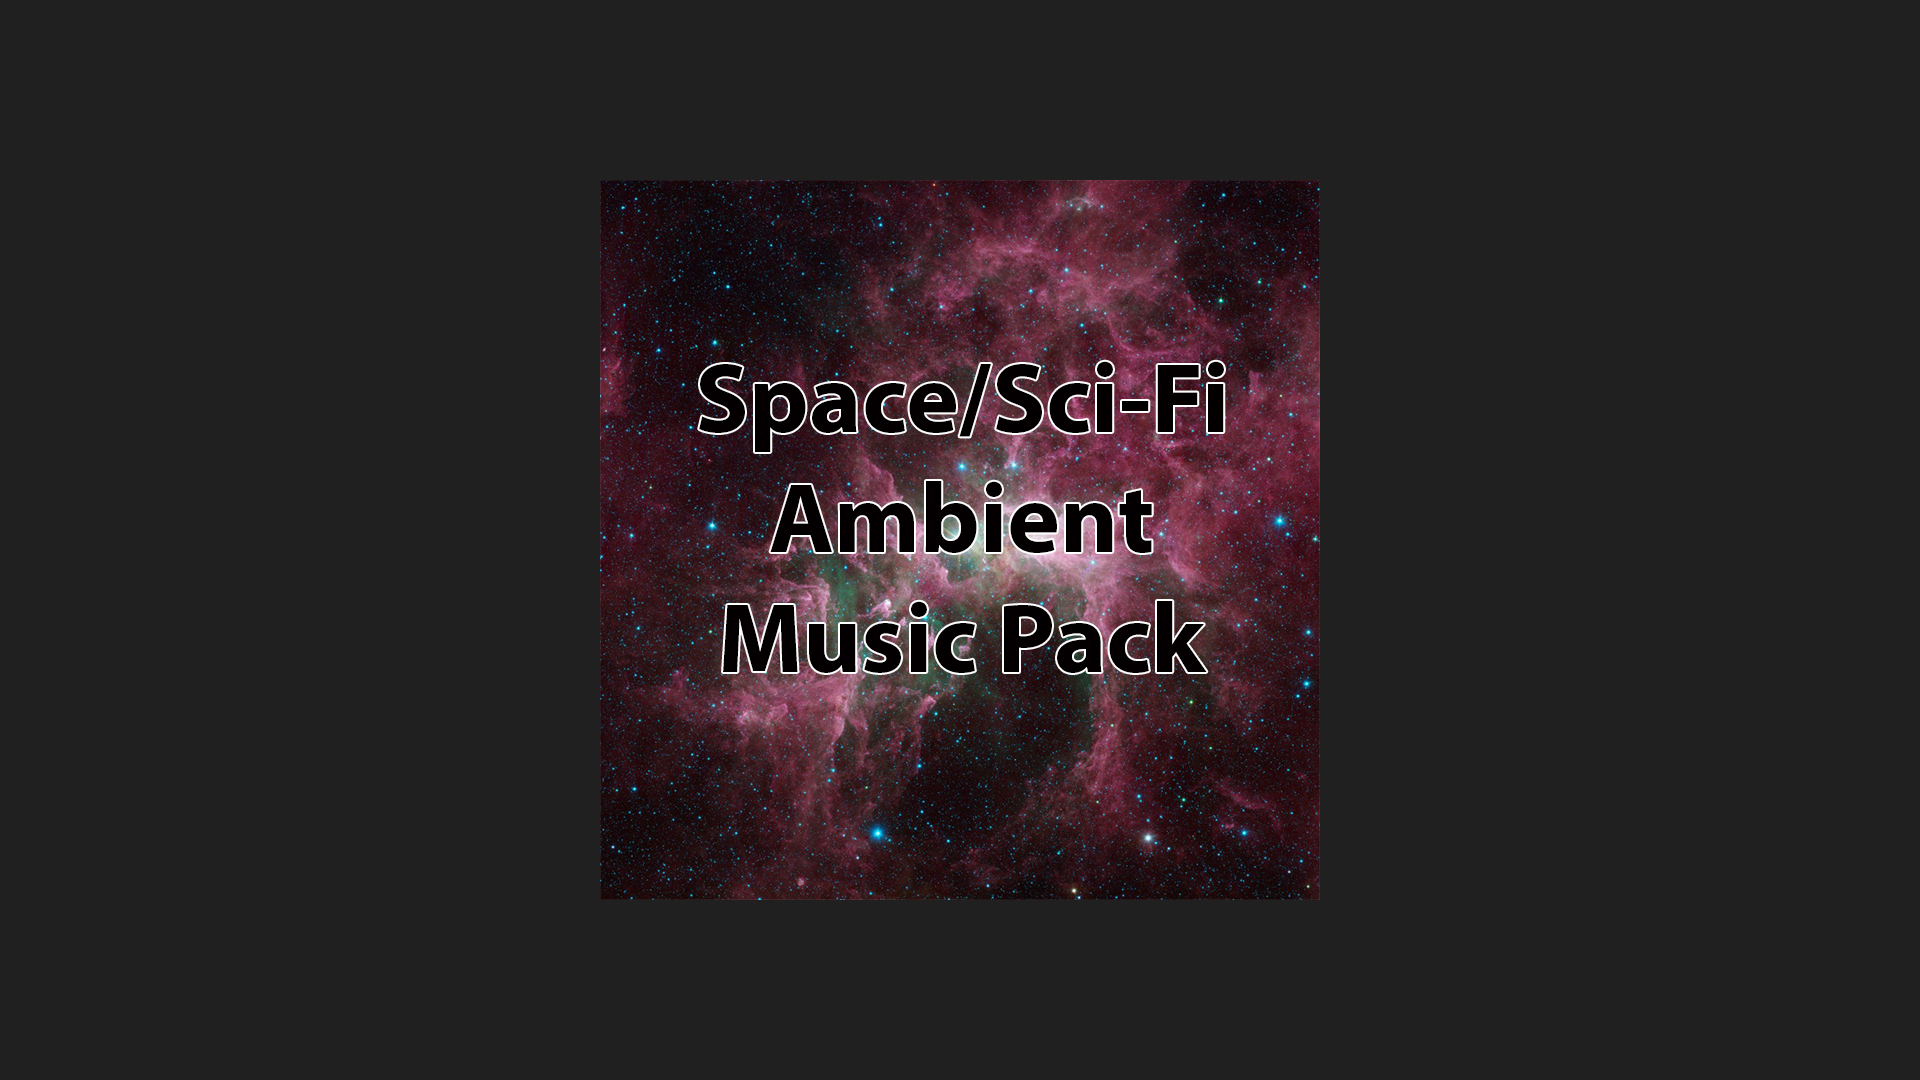 Sci-fi Ambient Music Pack by Taylor Brook Music in Music